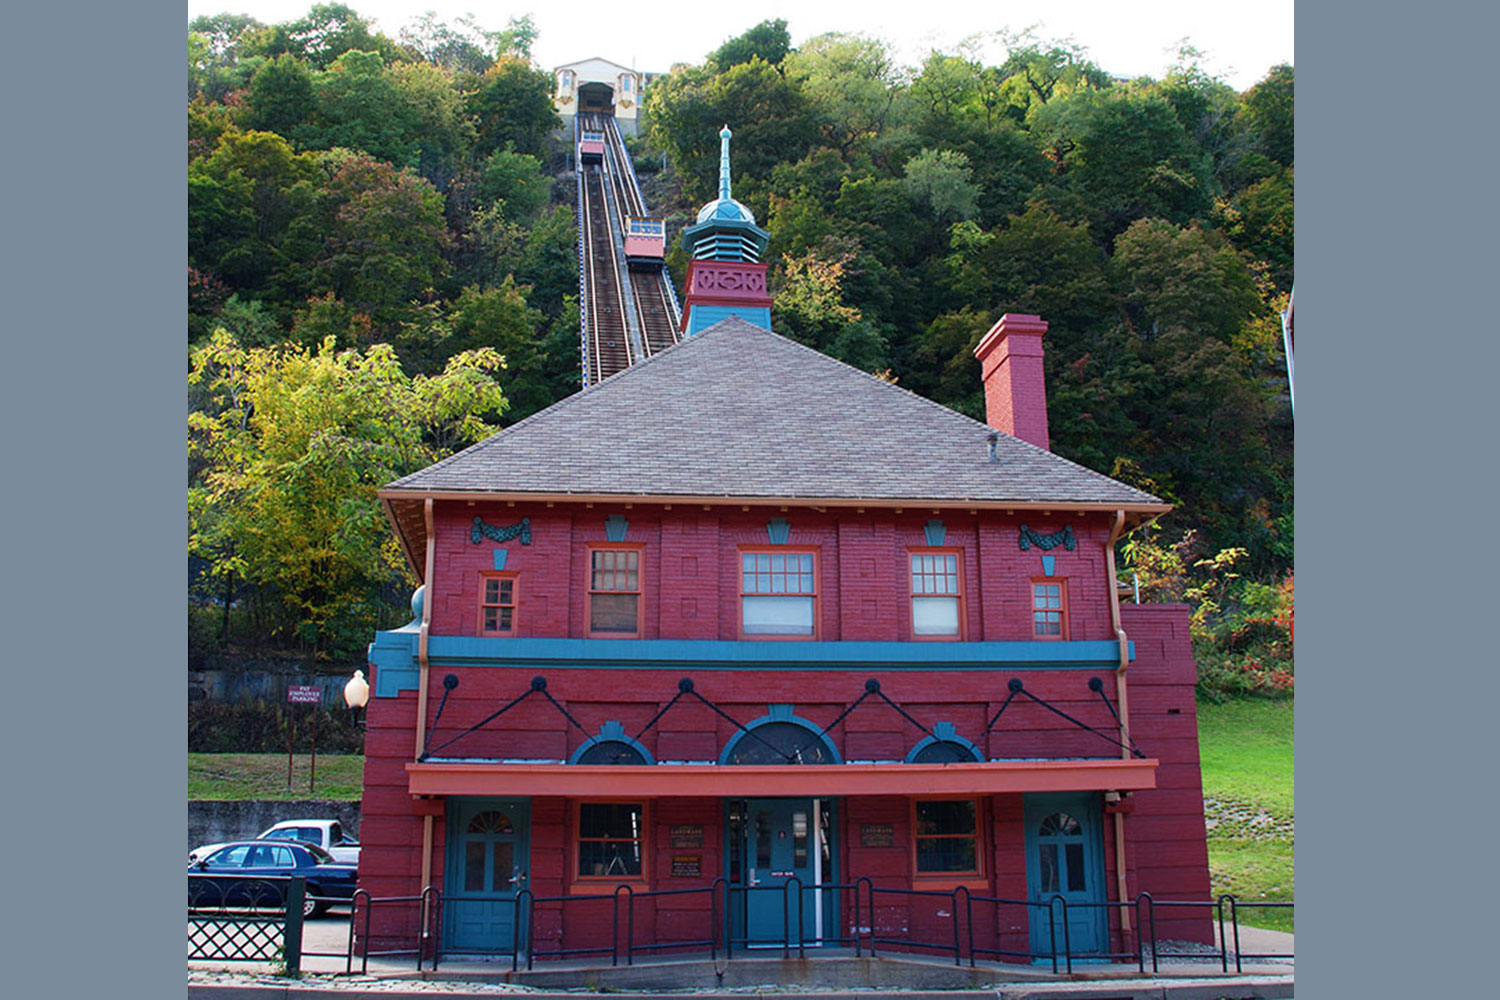 The Front of the Monongahela Incline Lower Station on Carson Street